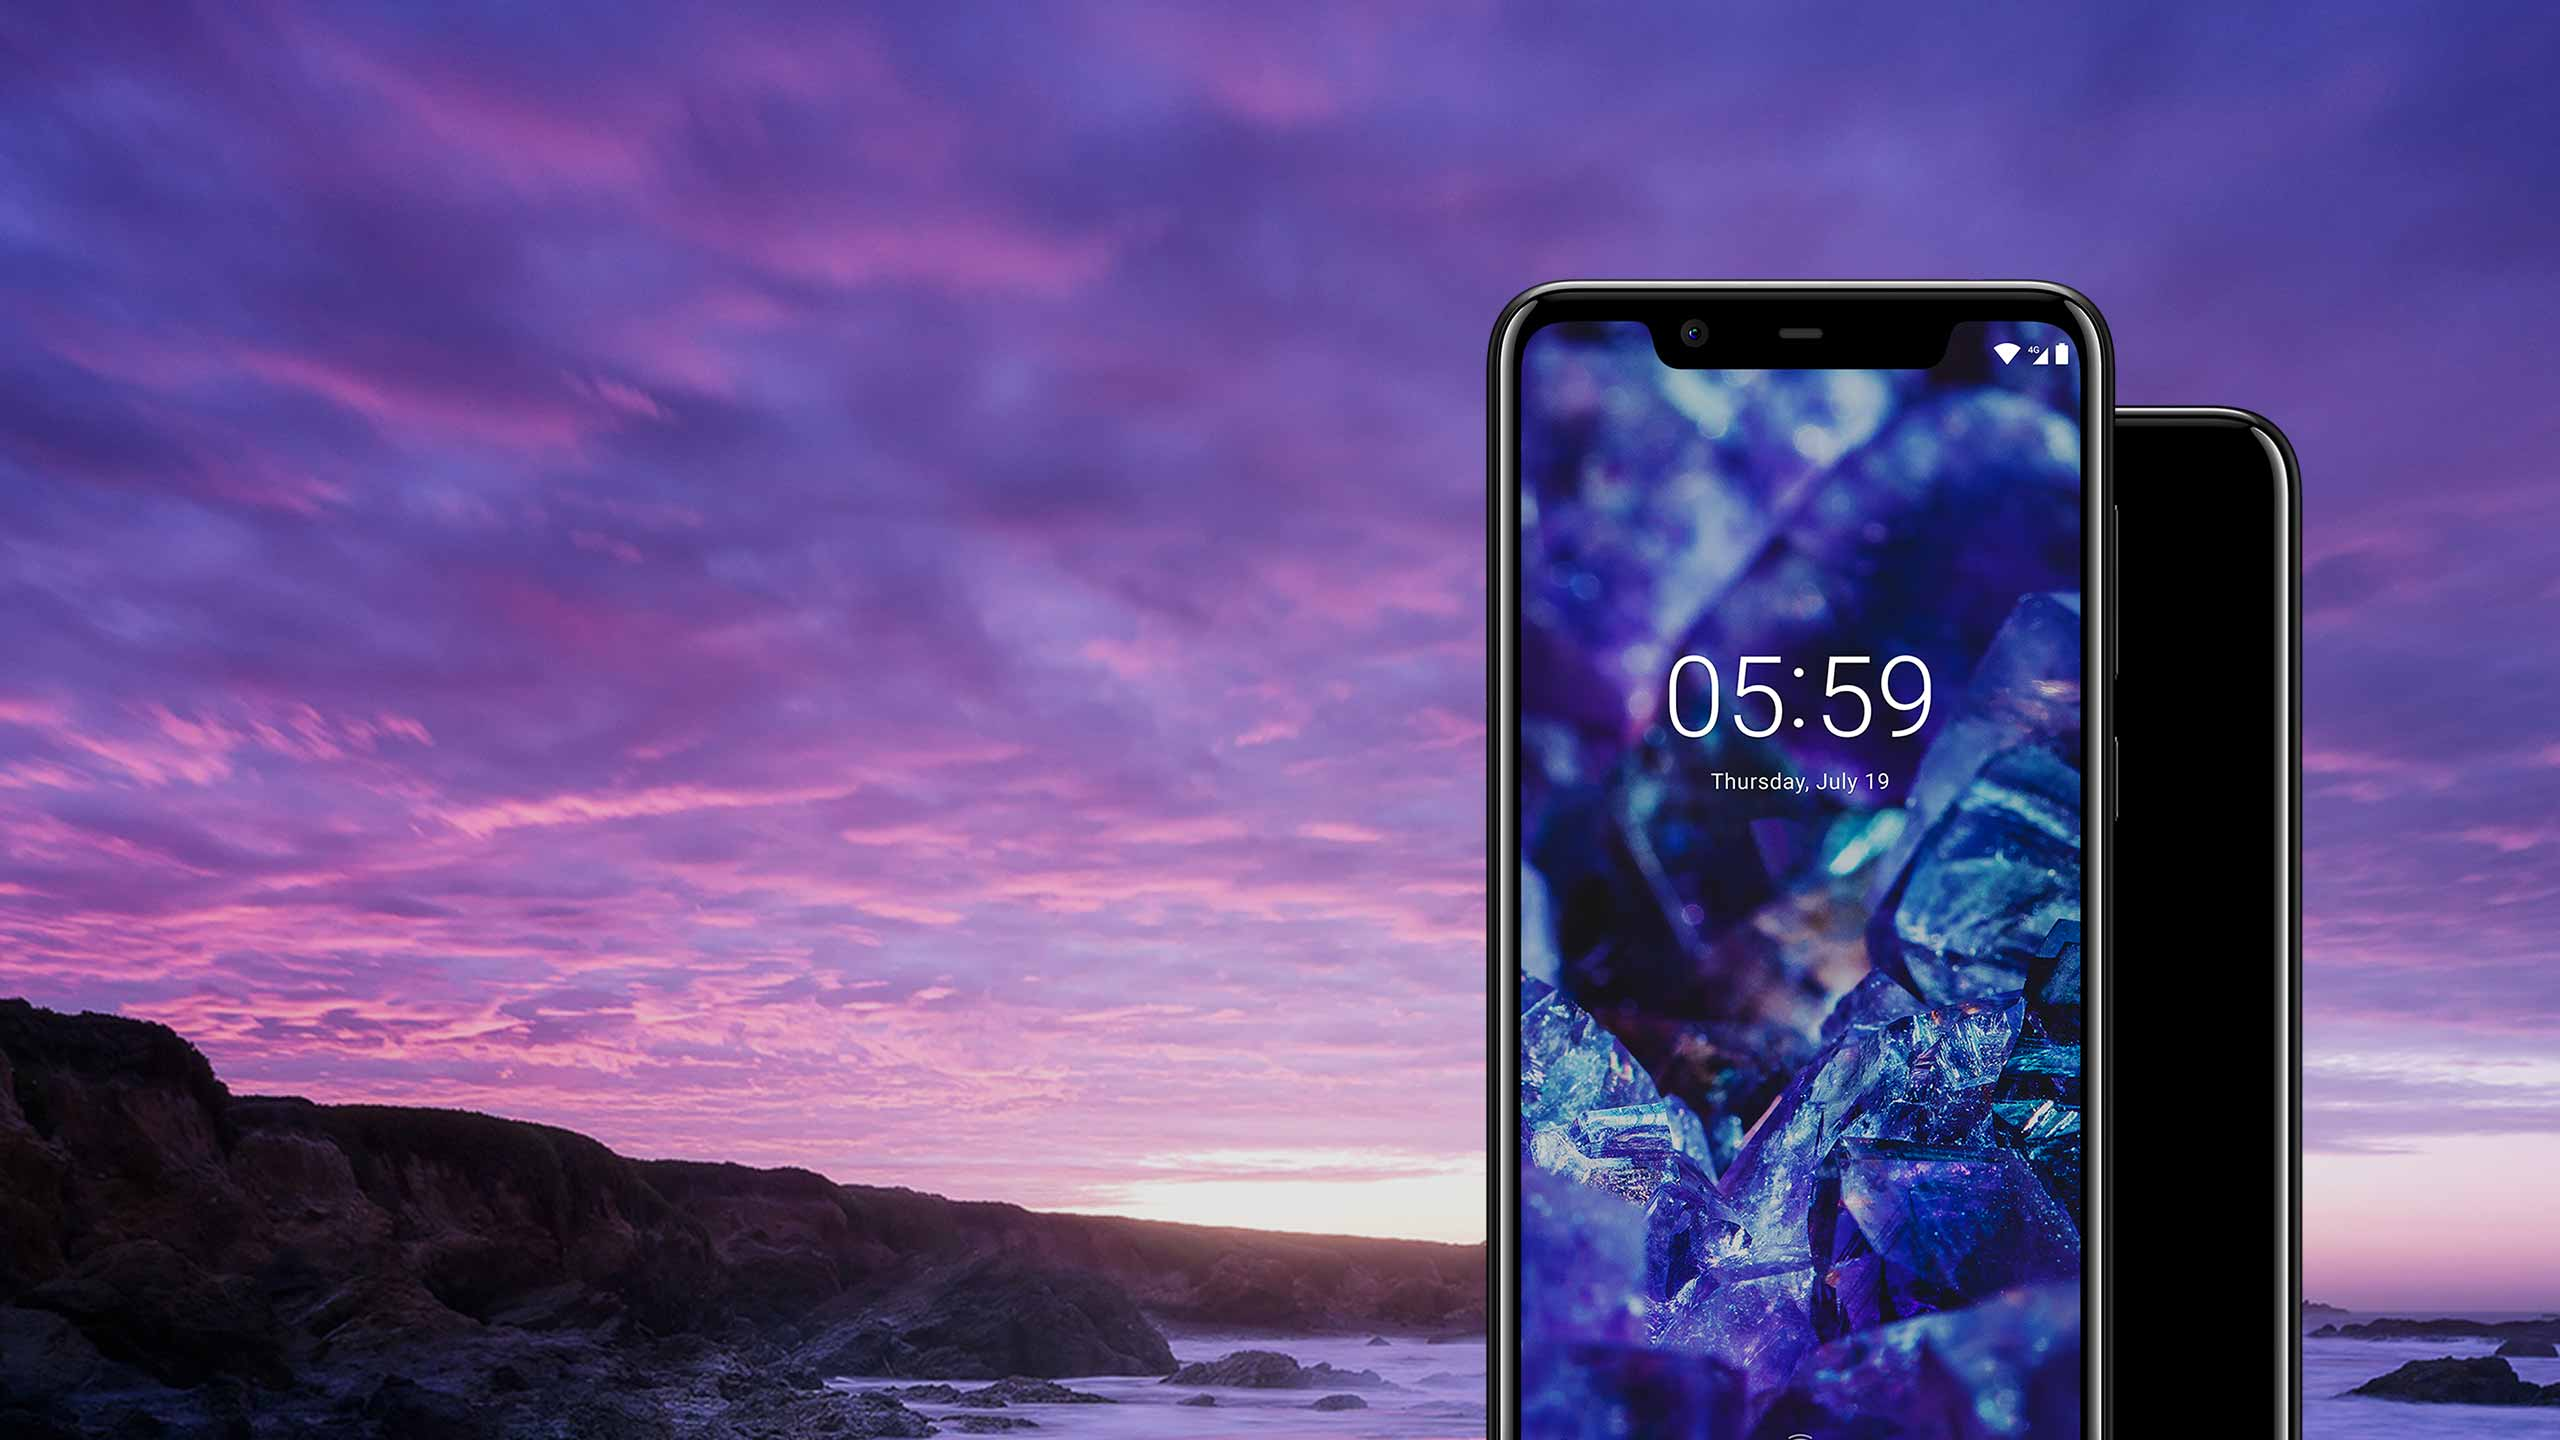 Nokia 5.1 Plus with Helio P60 launched in India at Rs 10,999 1